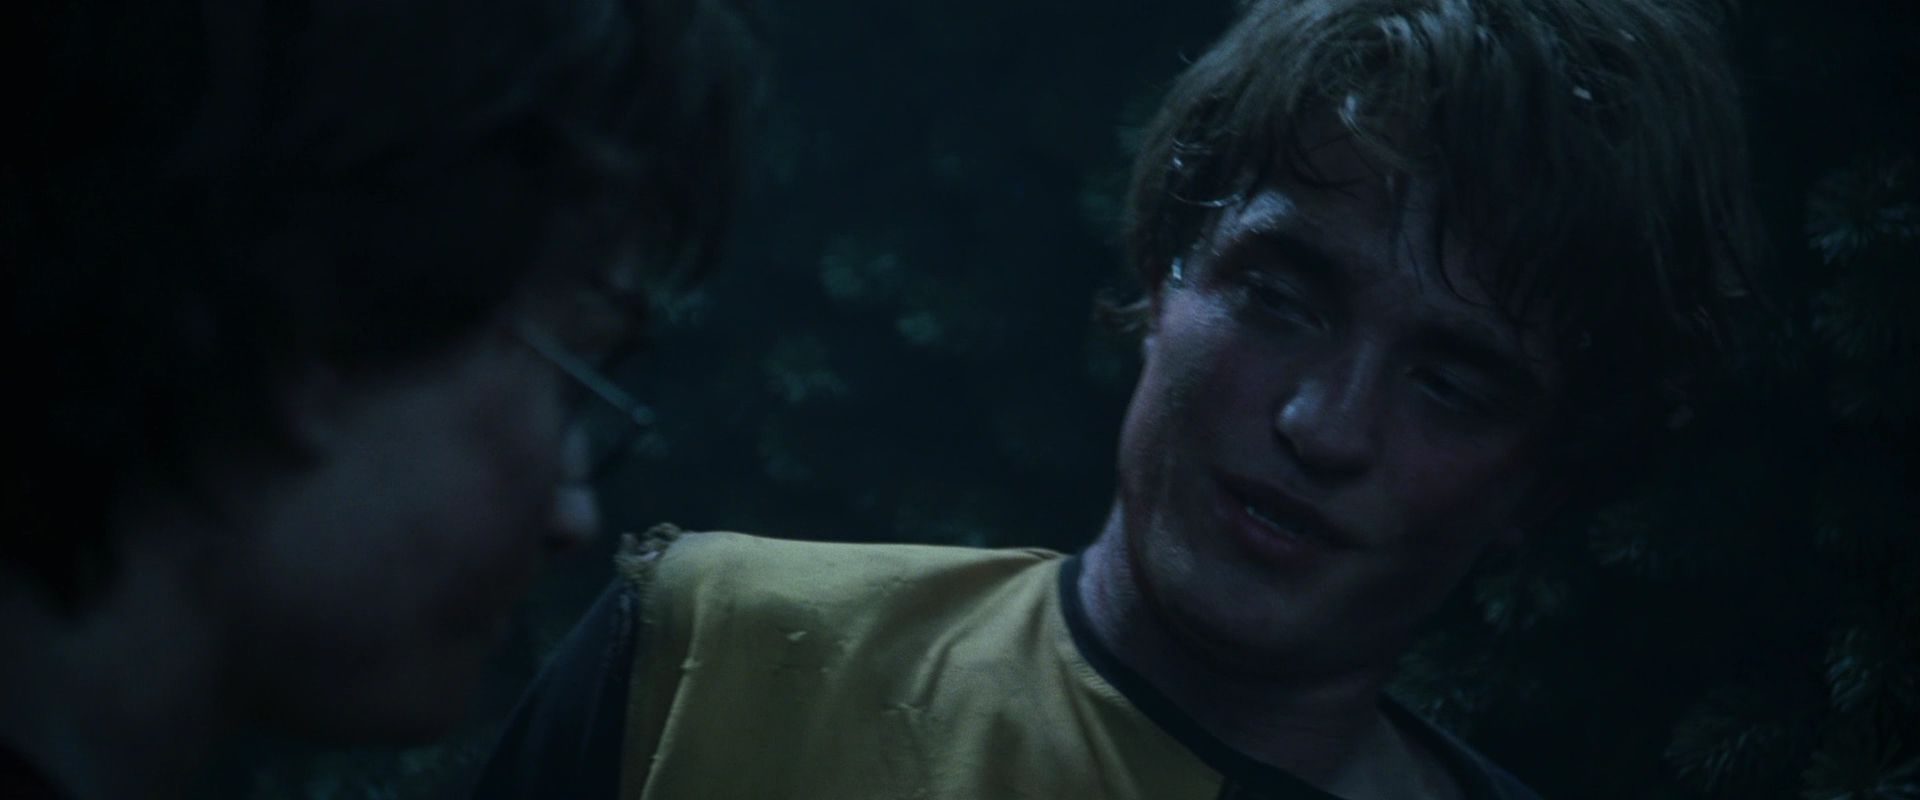 Harry Potter And The Goblet Of Fire Cedric Diggory Death Scene Cedric Diggory images ...